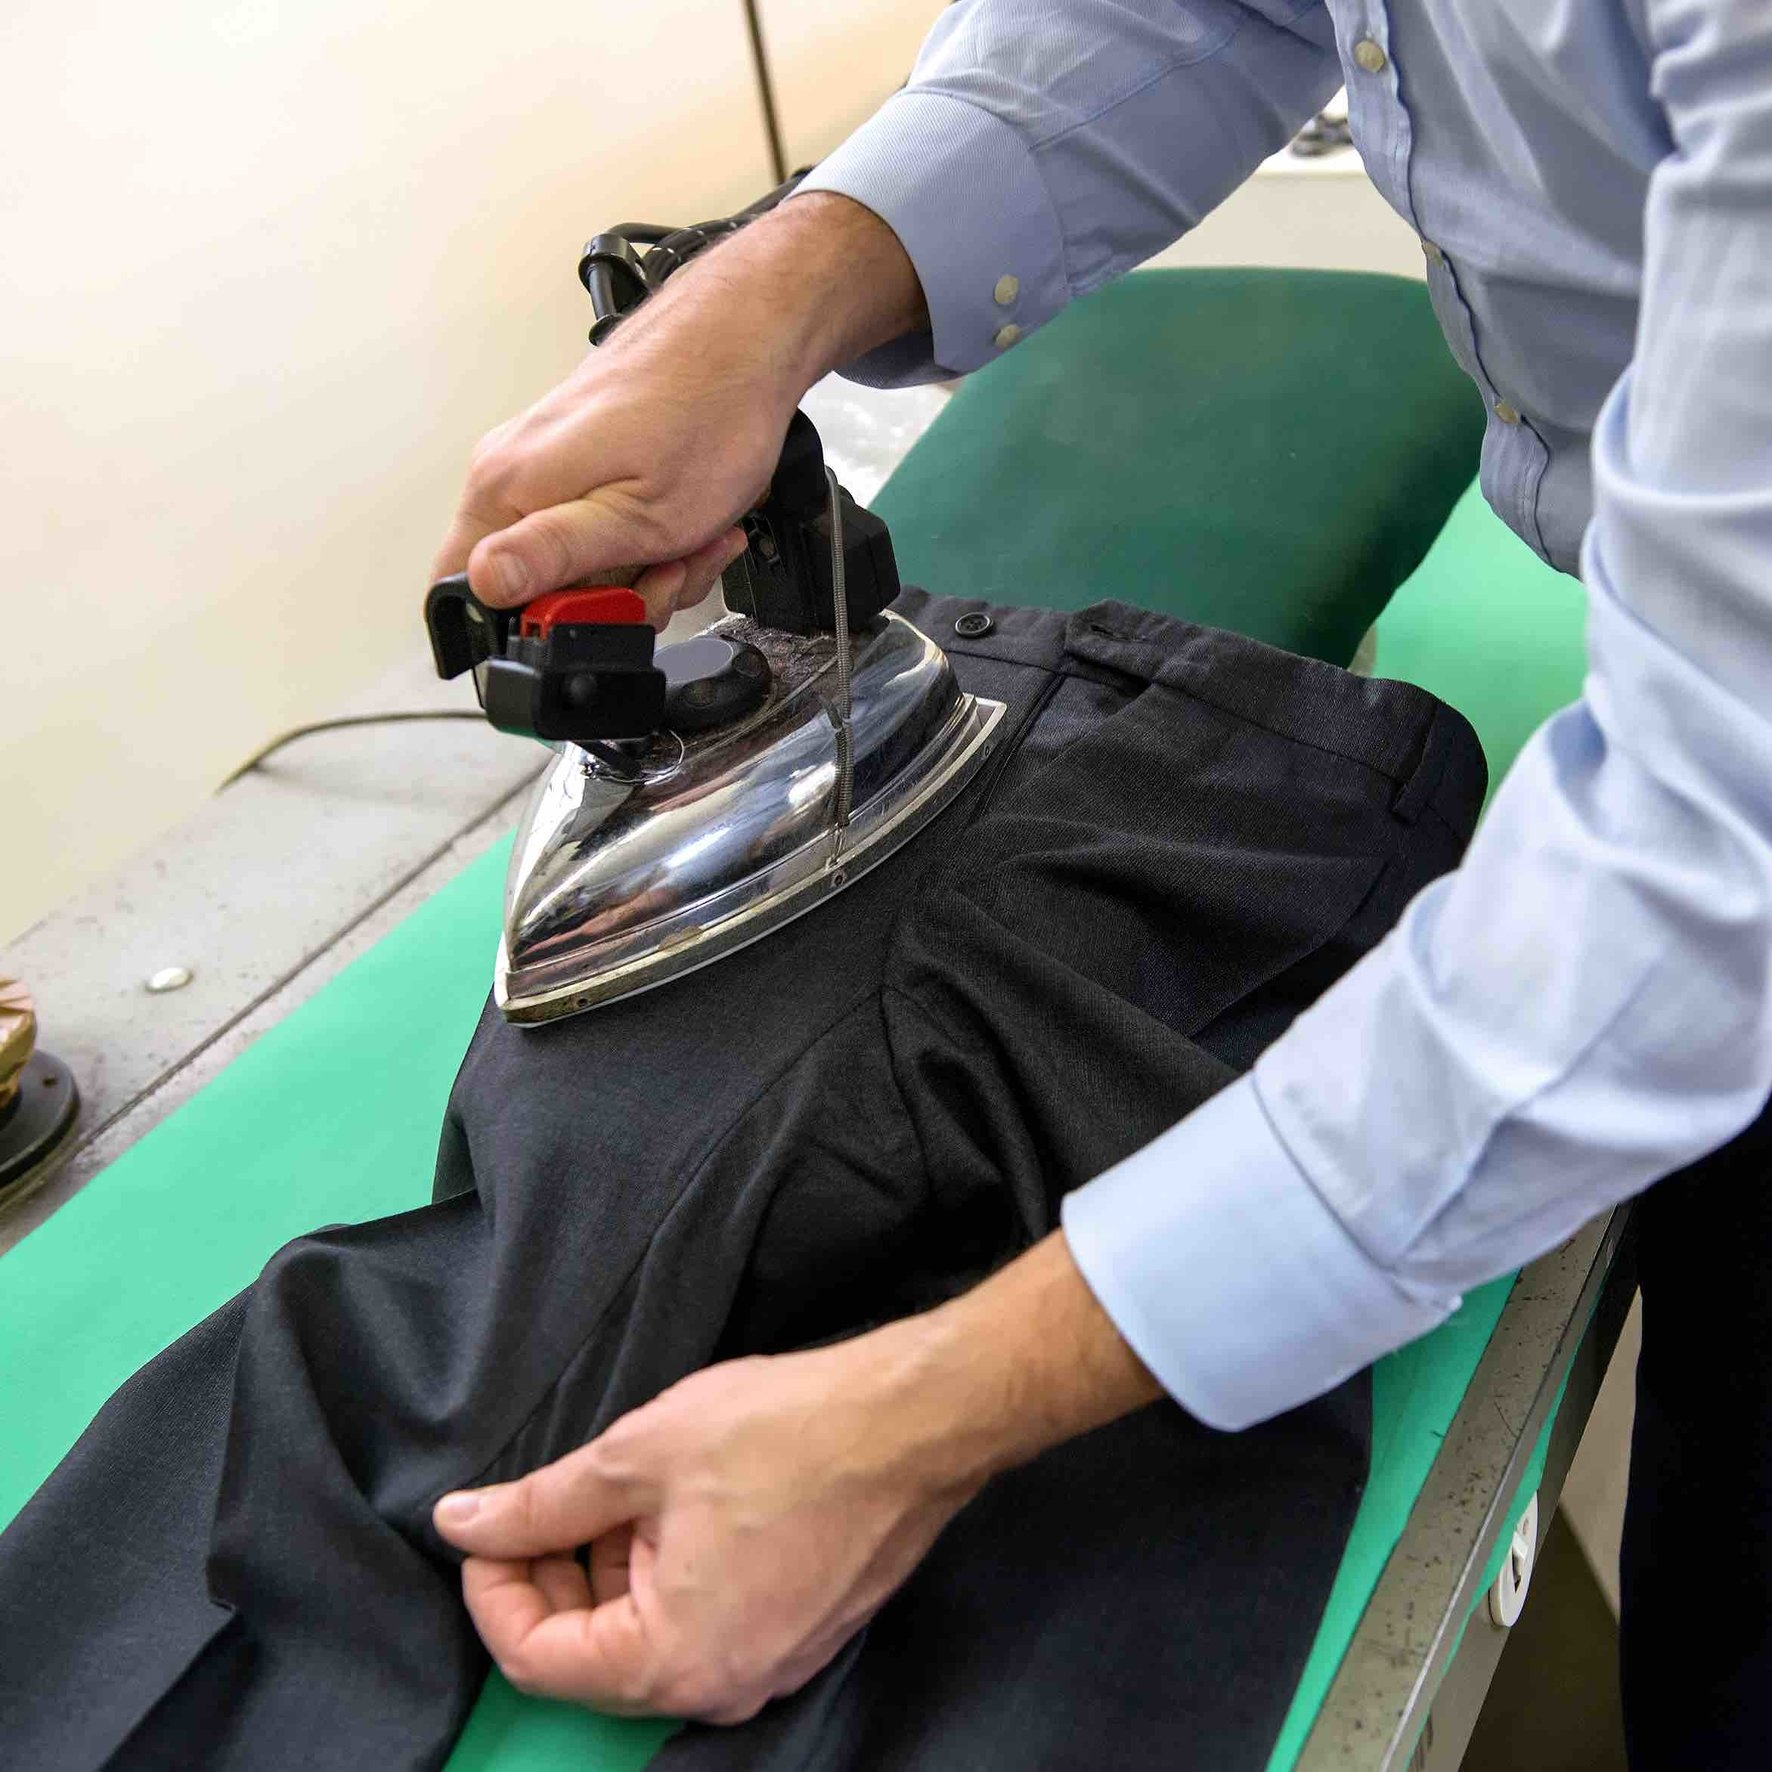 tailored-pants-pressing